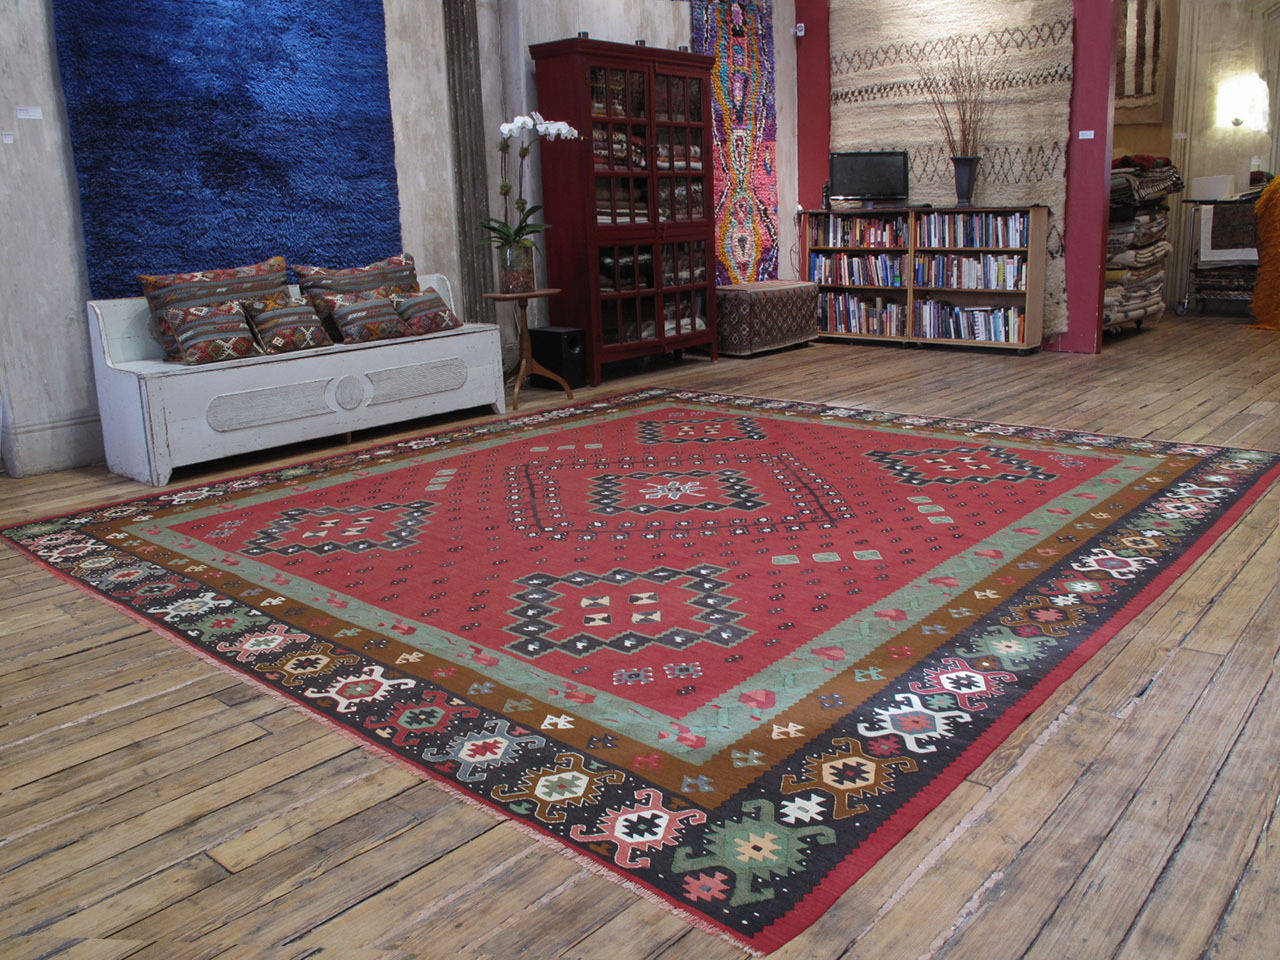 A beautiful old kilim of large and square-ish proportions from the border region between Serbia and Bulgaria, which has a centuries-old tradition of kilim weaving, older examples from the region are called Sharkoy, the old Turkish name of the town